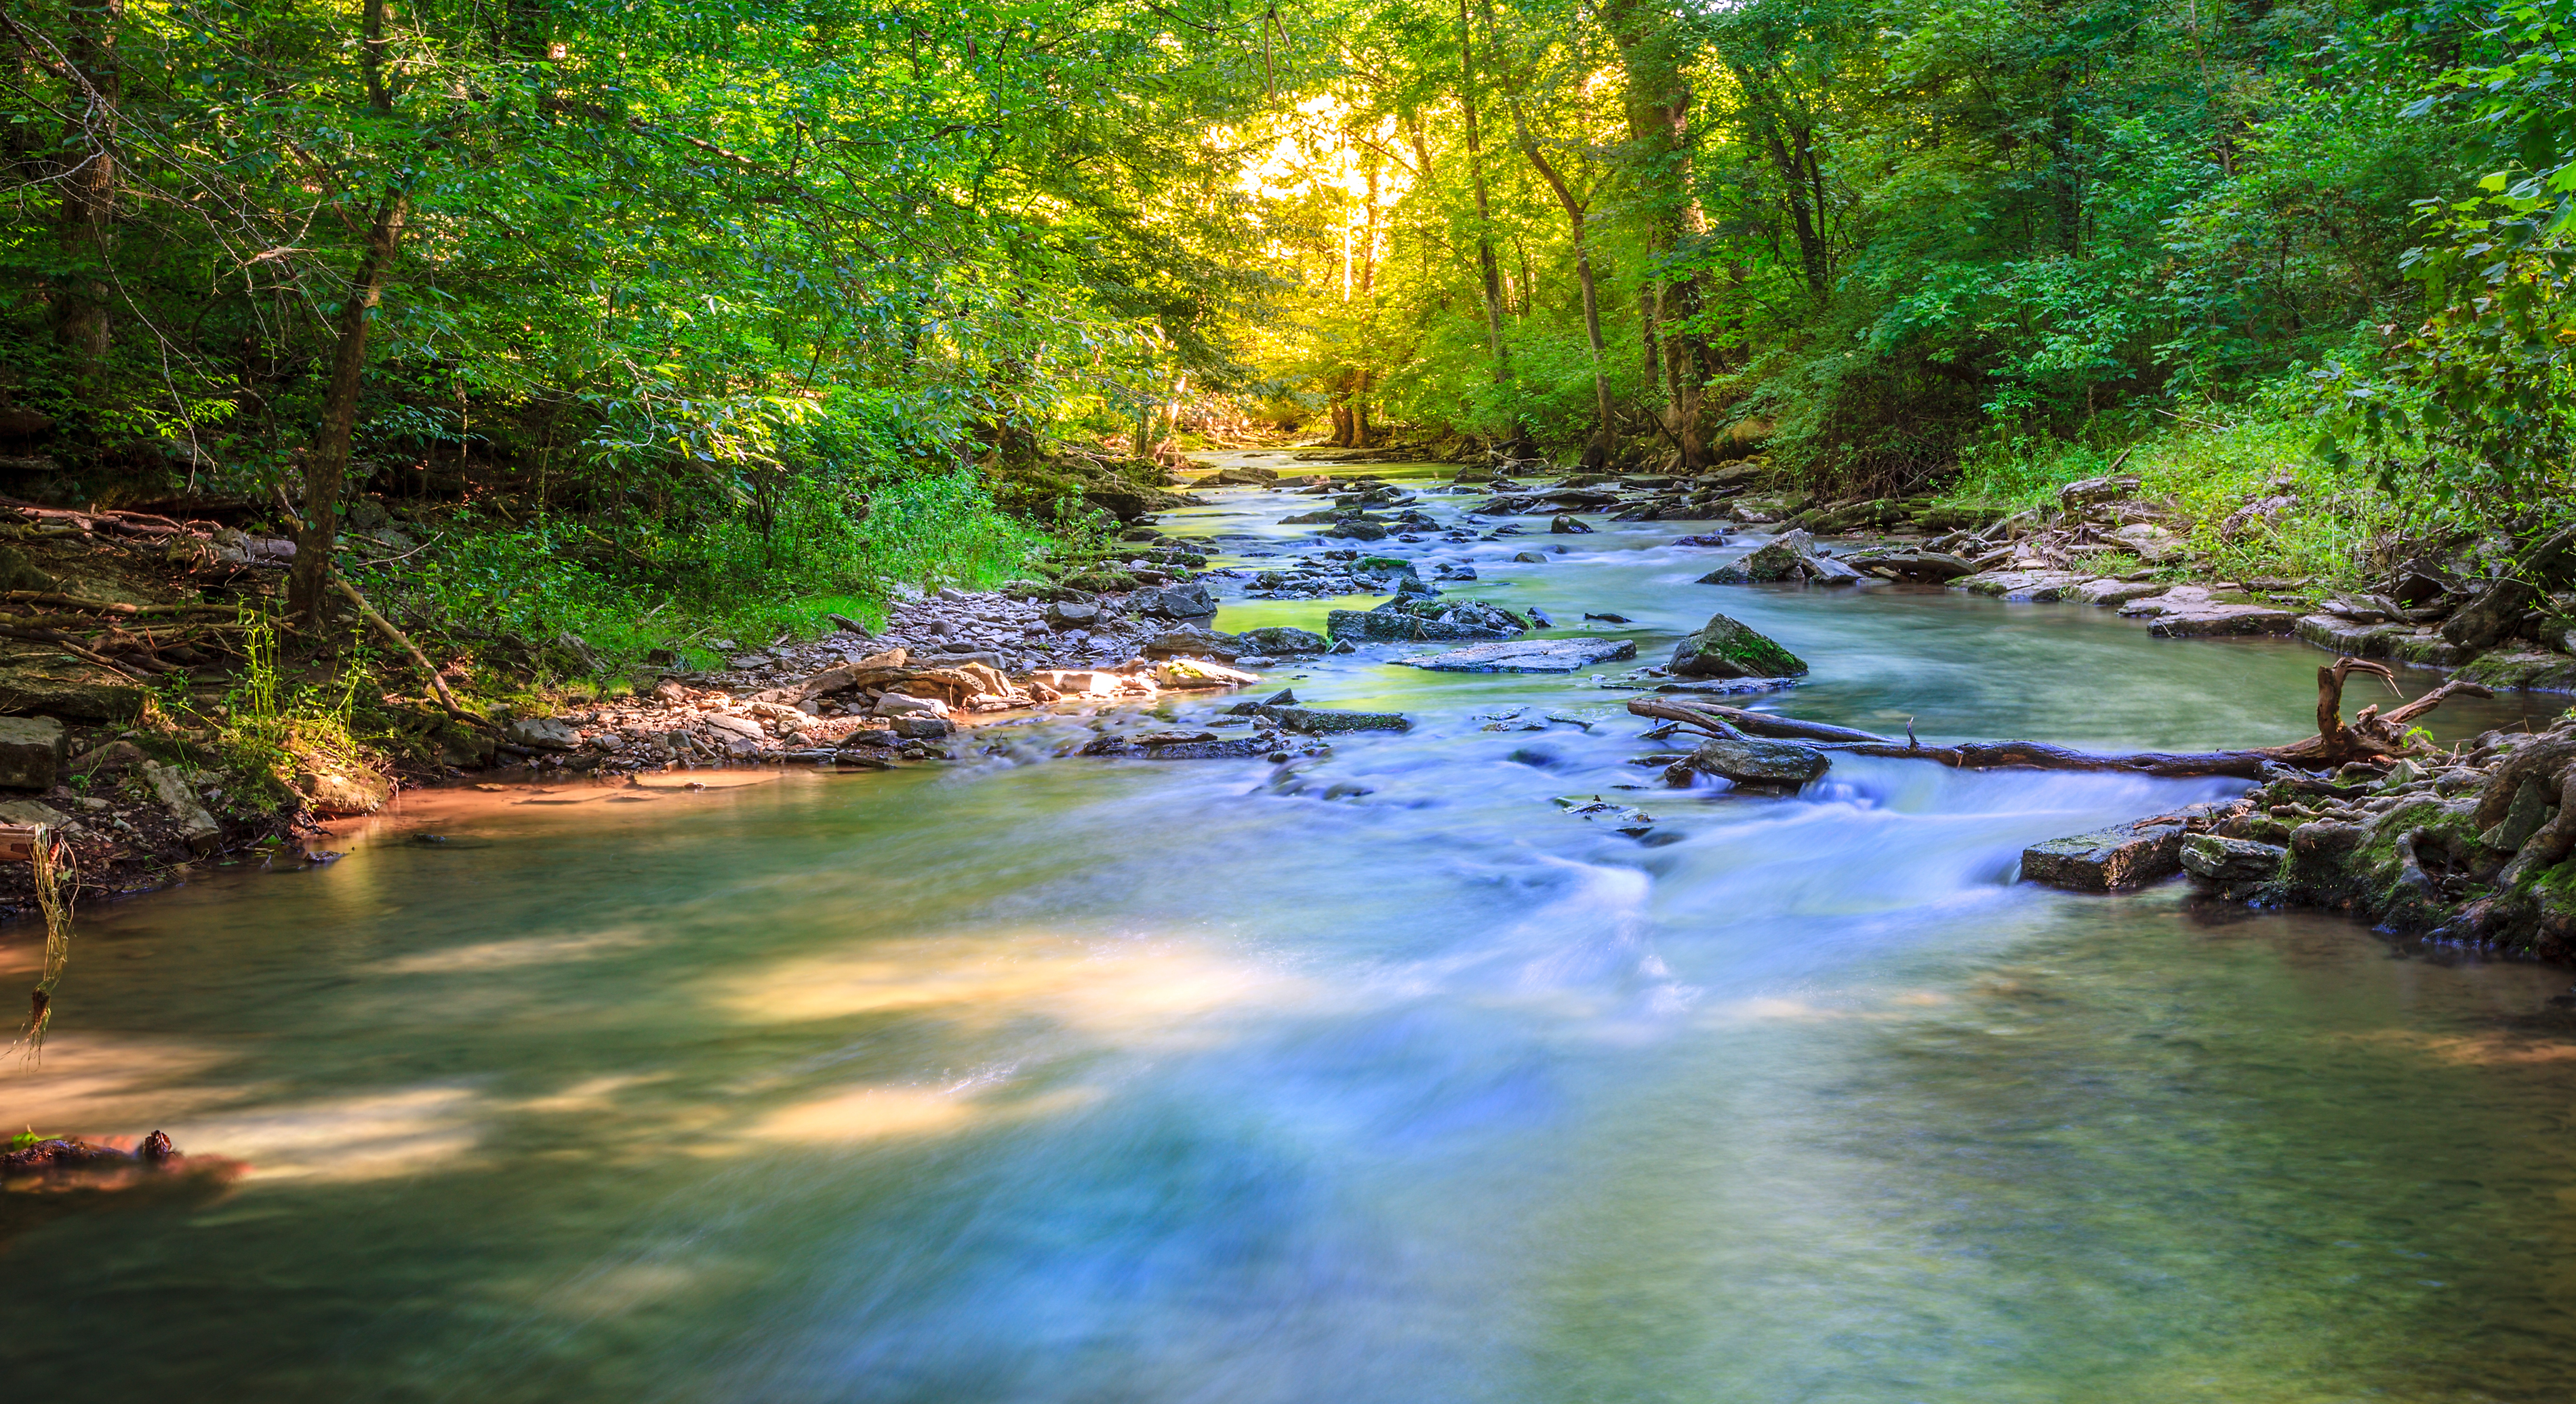 bigstock-Creek-in-the-forest-55063418